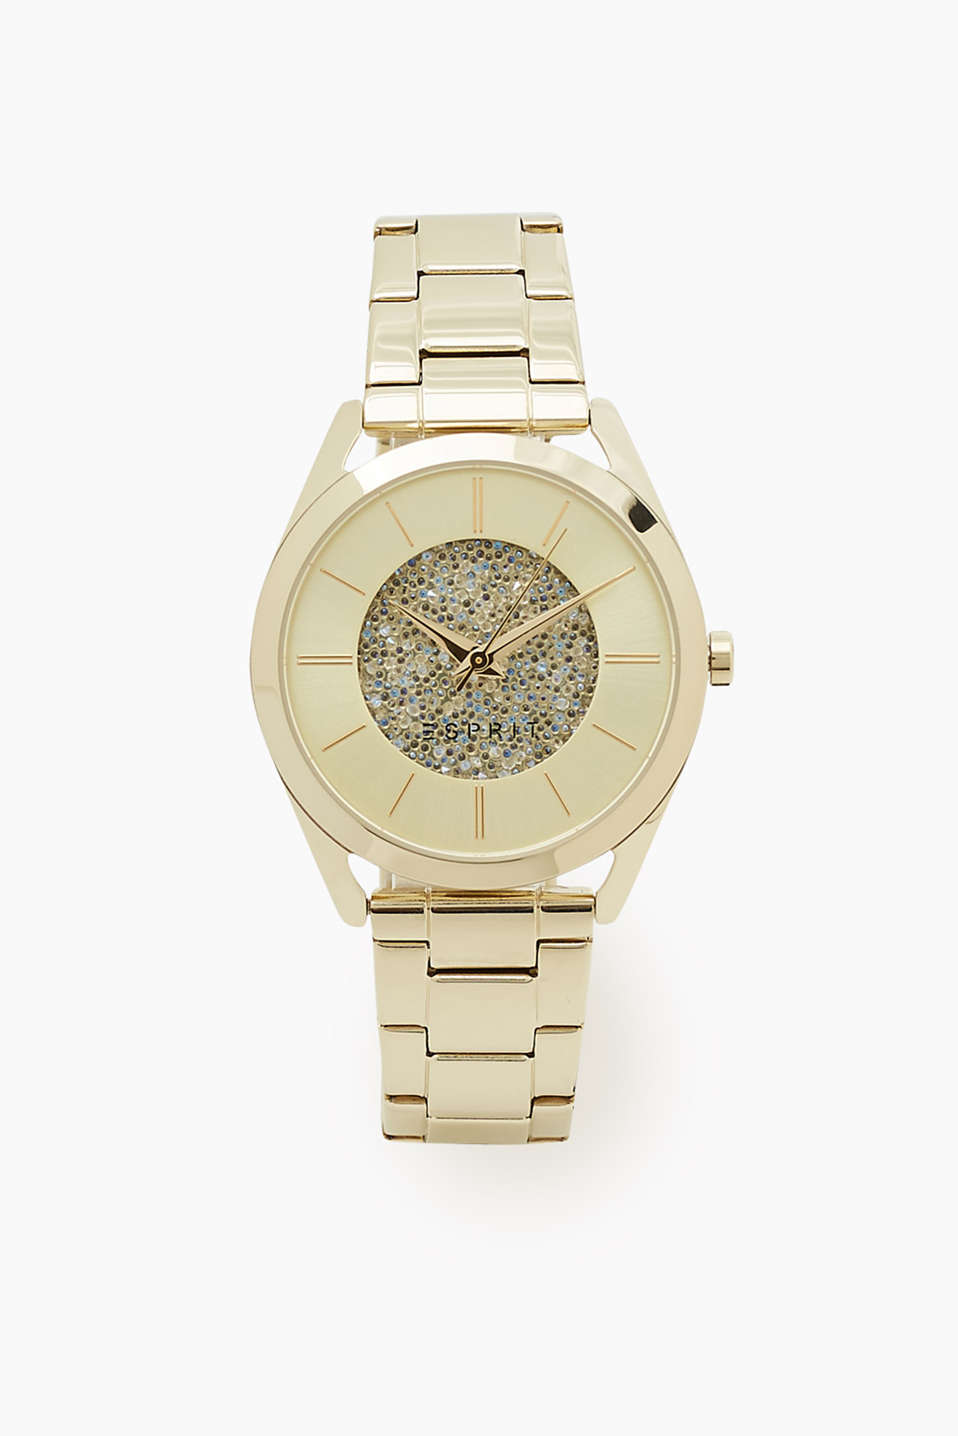 Elegant and feminine watch with a link strap and a clip clasp as well as a glittery dial